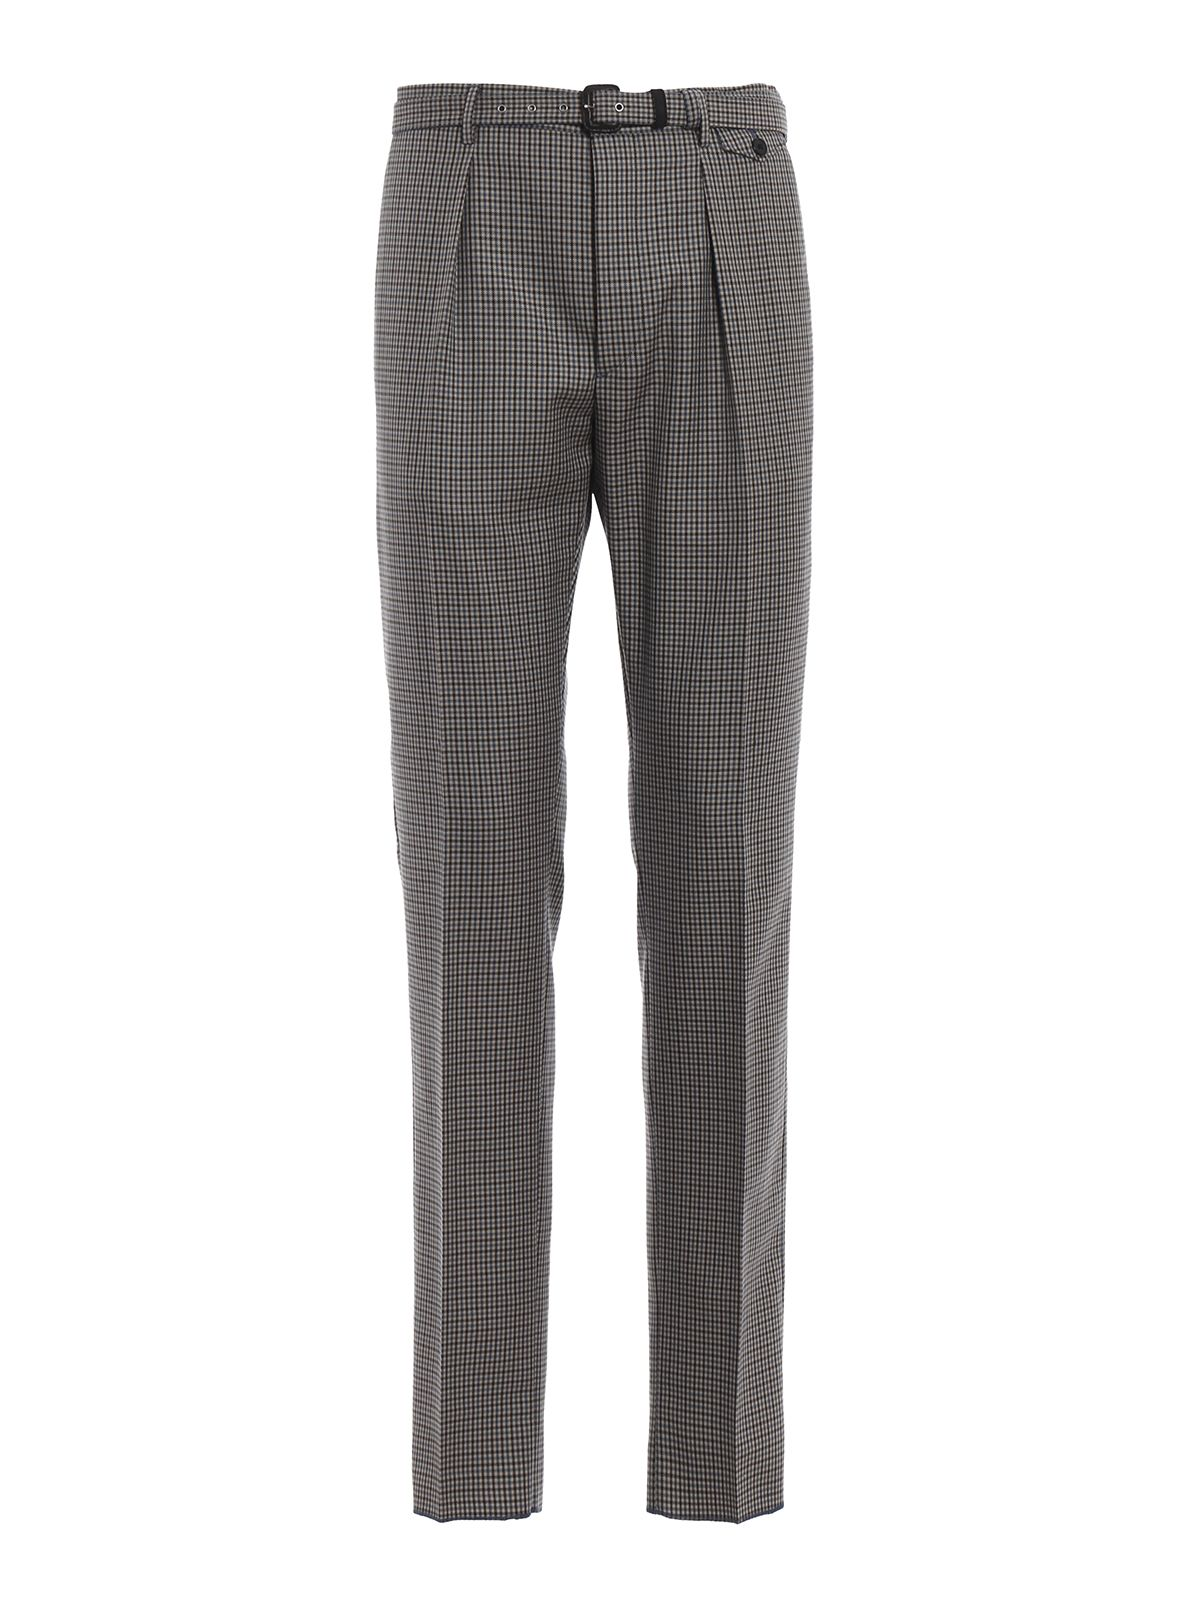 Prada Checked Belted Trousers